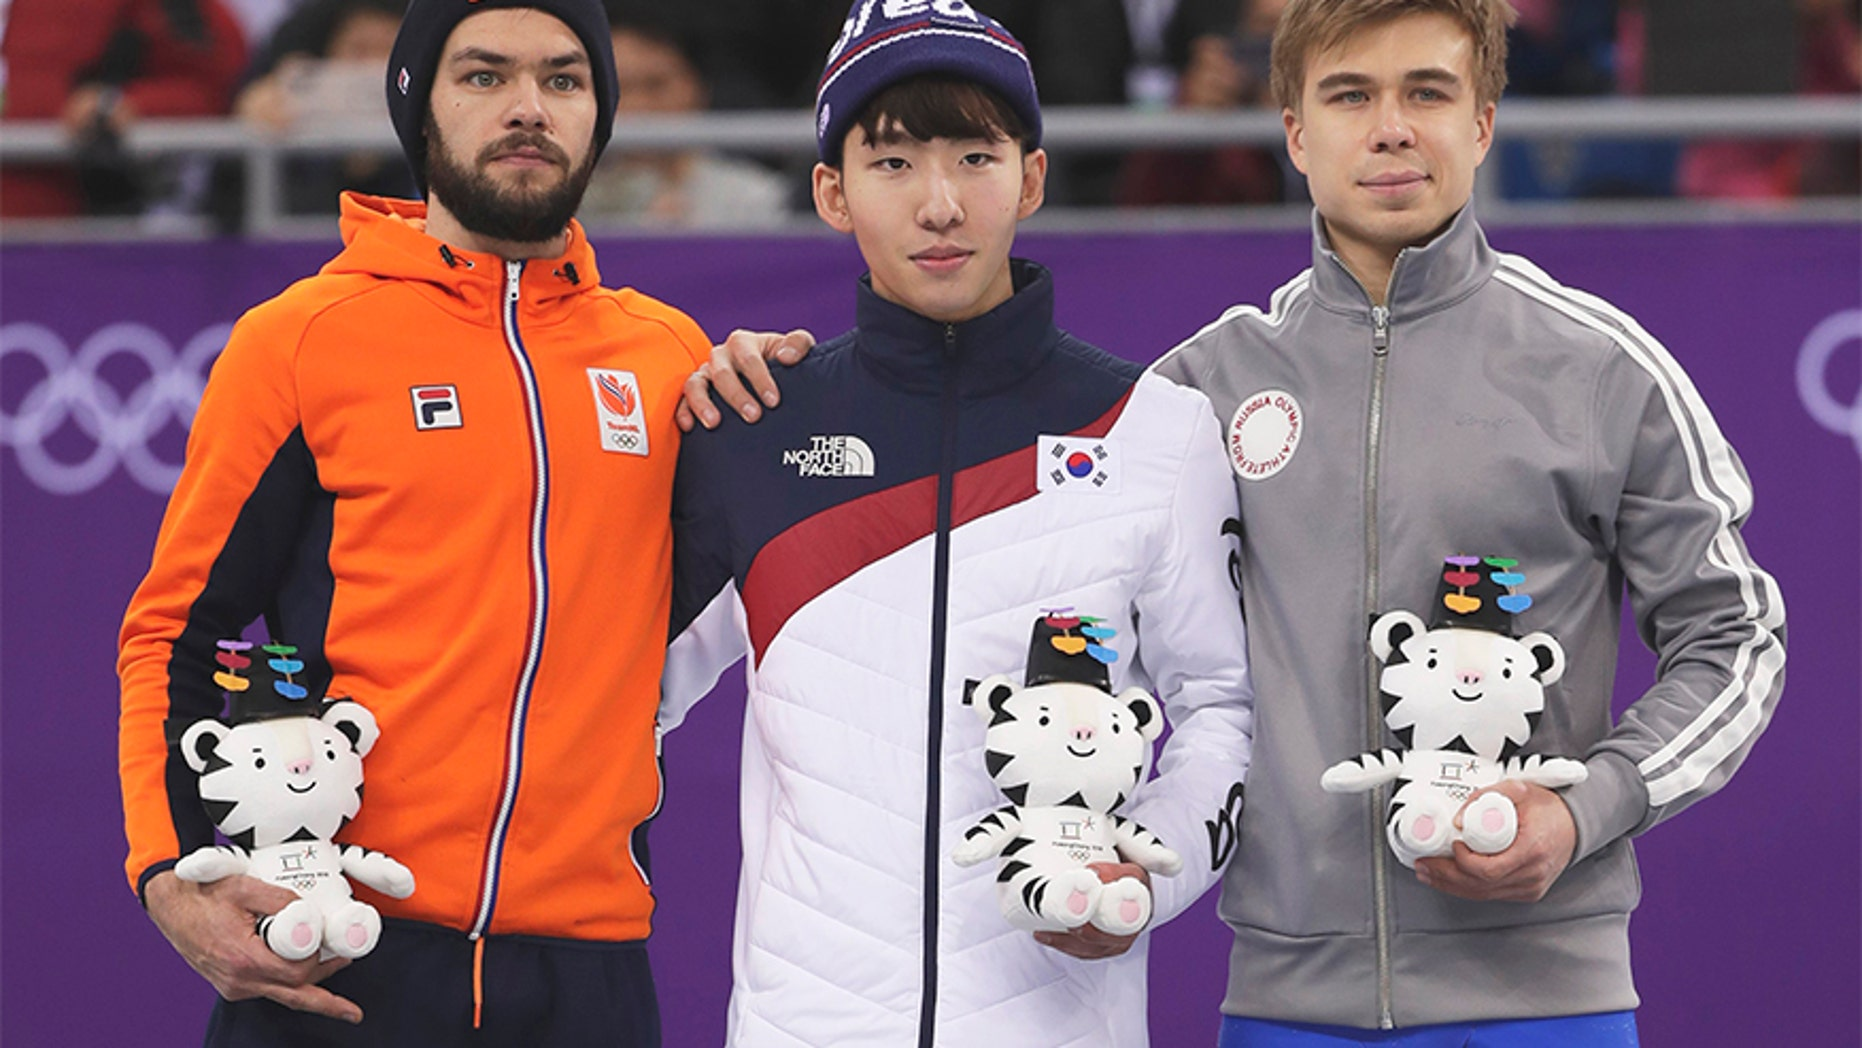 Feb. 10, 2018: Lim Hyojun, center, of South Korea stands on a podium during a Venue Ceremony following his win in the men's 1500 meters short-track speedskating final in the Gangneung Ice Arena at the 2018 Winter Olympics.